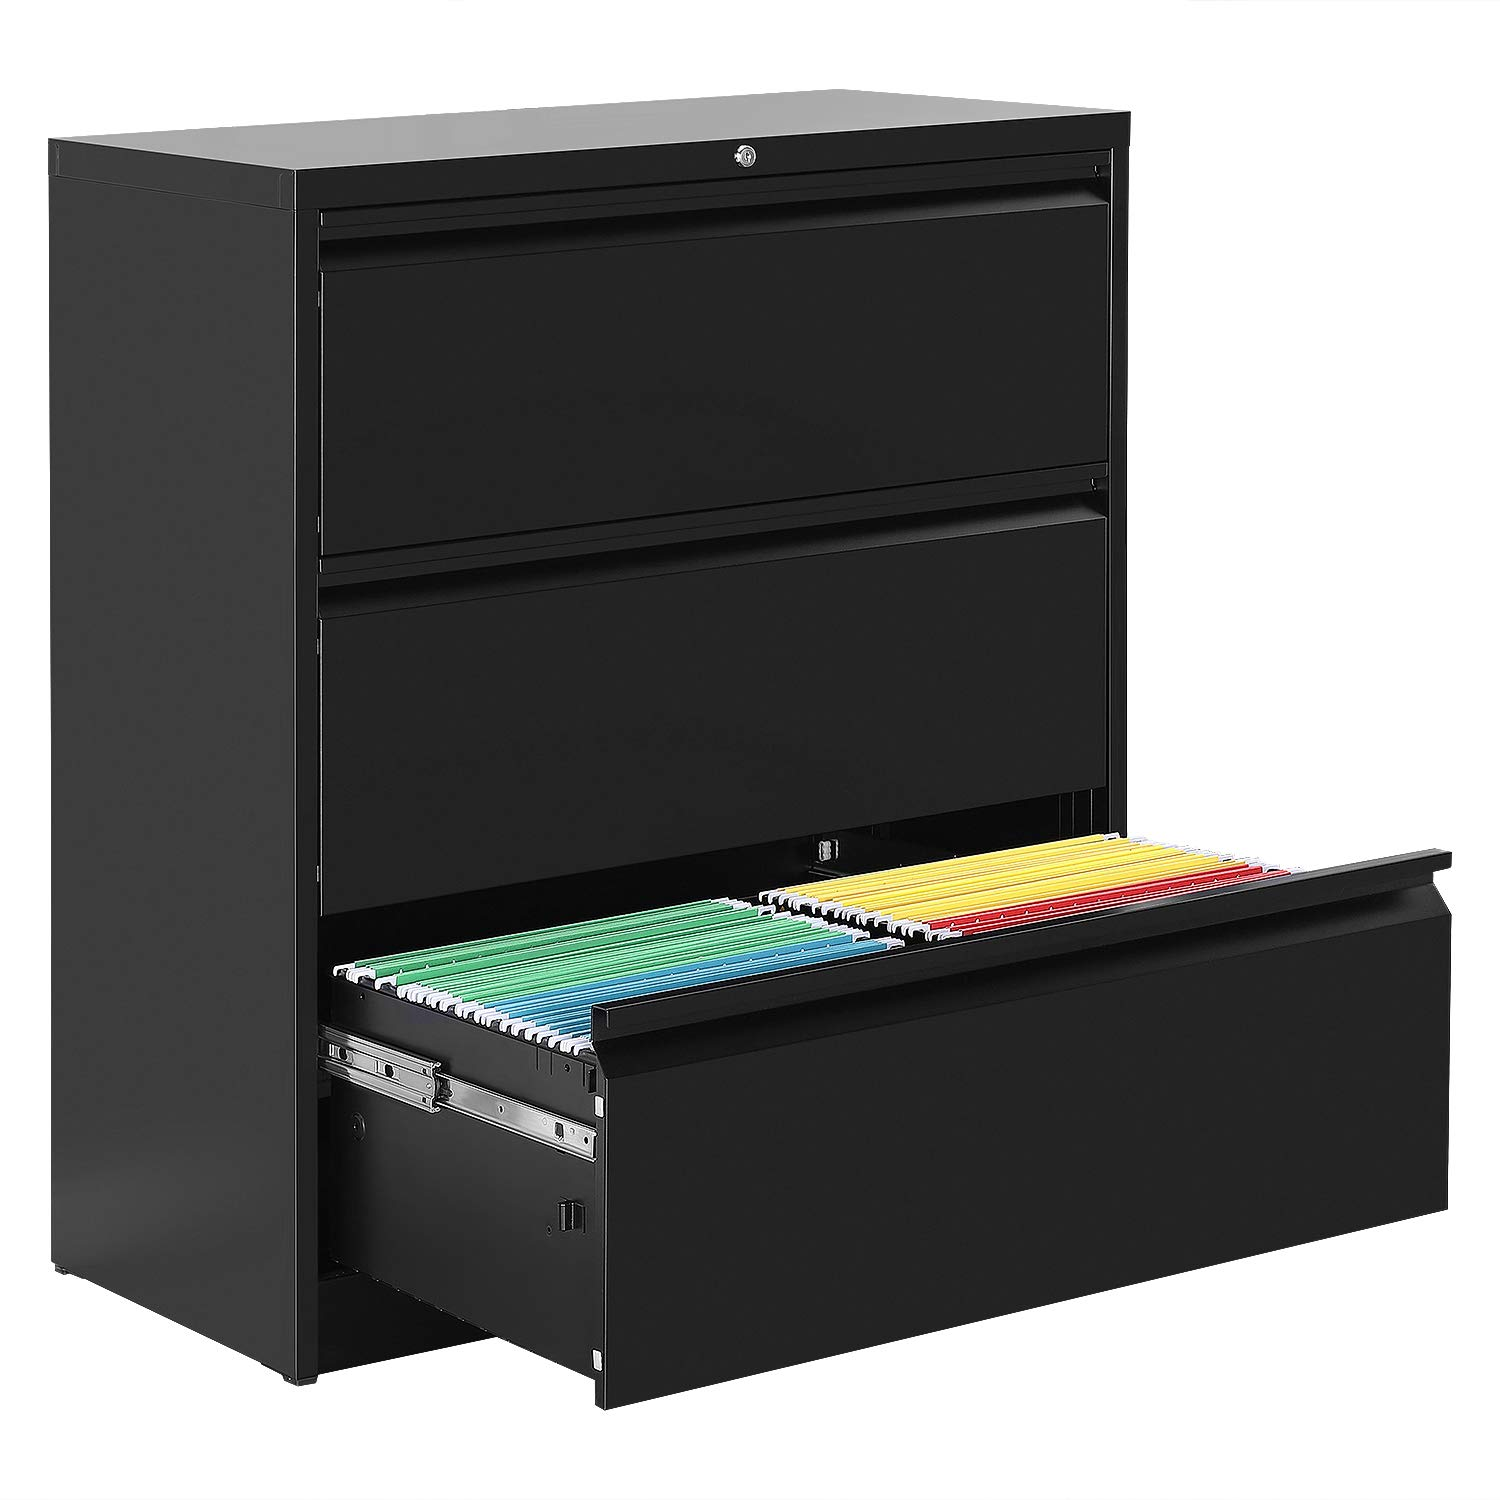 3 Drawers Black Lateral File Cabinet with Lock, Lockable Heavy Duty Filing Cabinet, Steel Construction